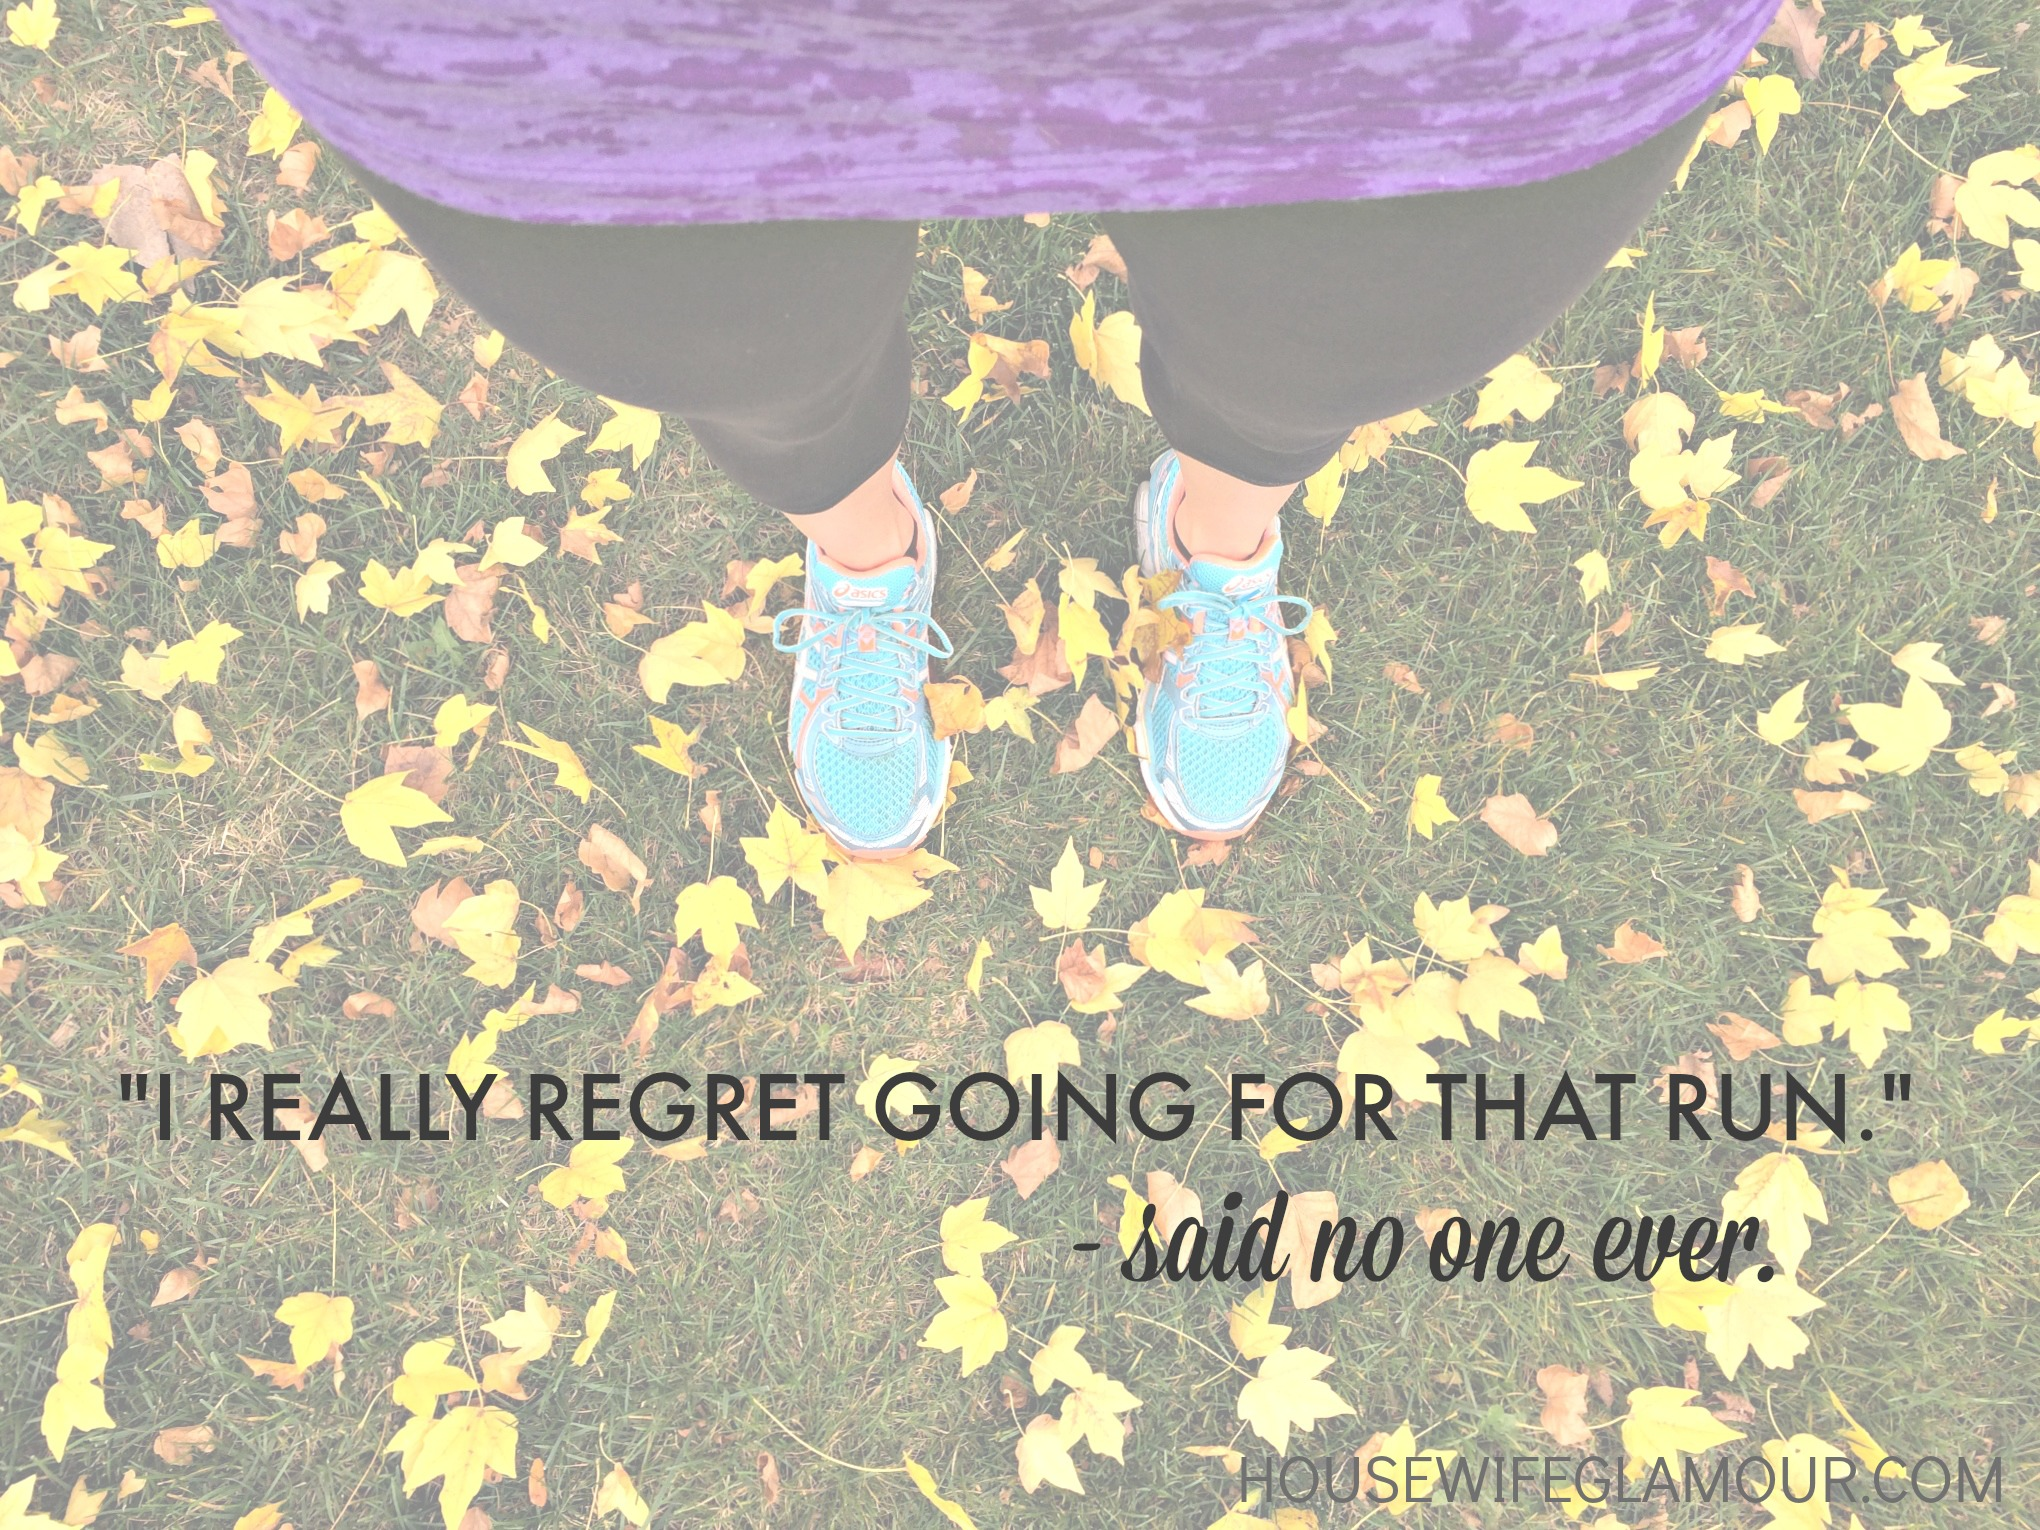 i regret going for a run said no one ever